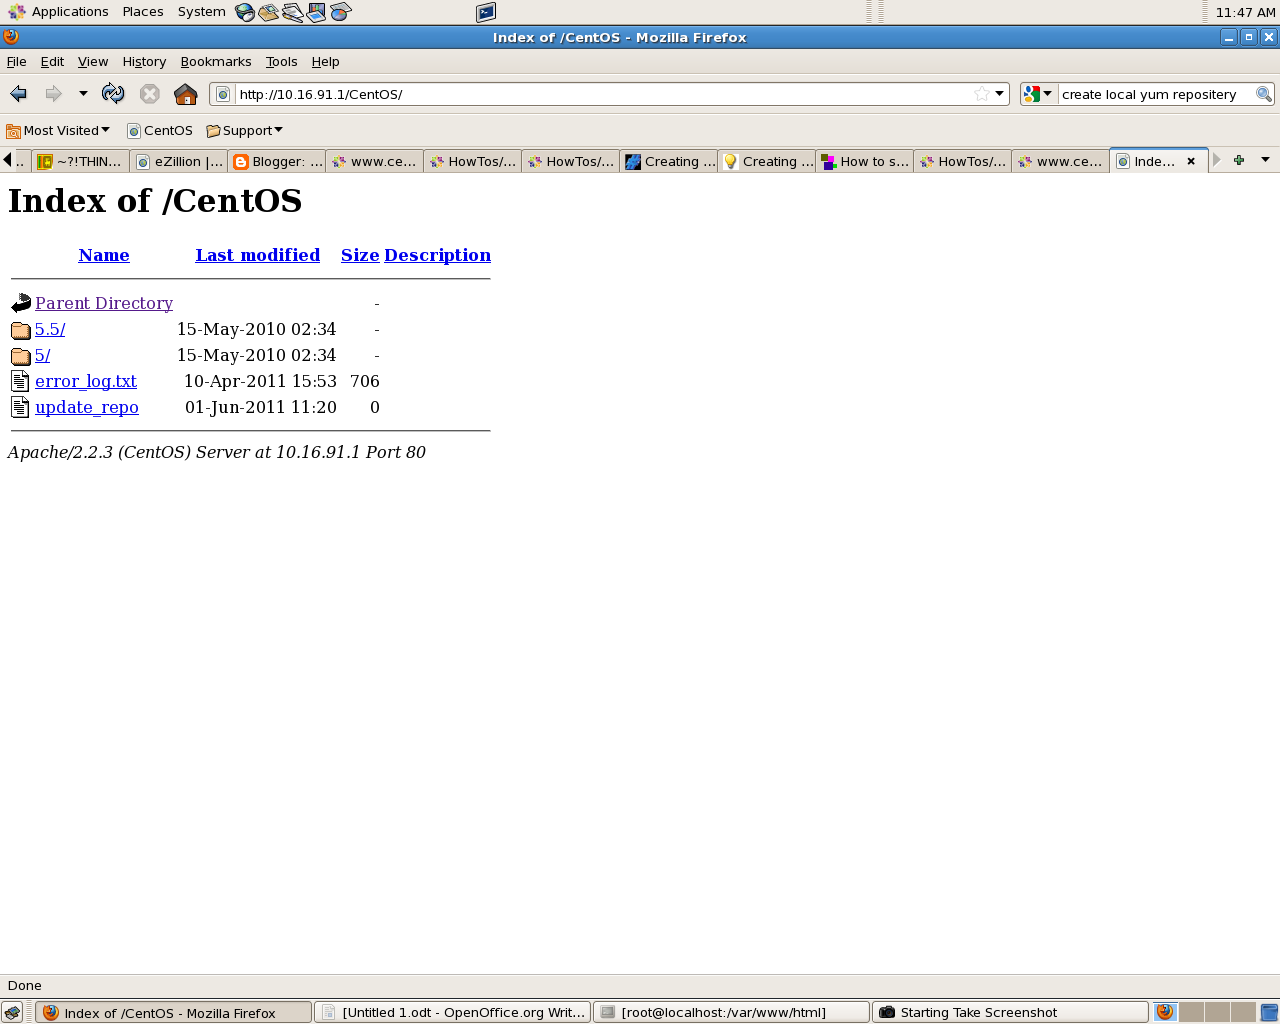 THINGS YOU DON'T KNOW!?~: Creating A Local Yum Repository on CentOS 5 x